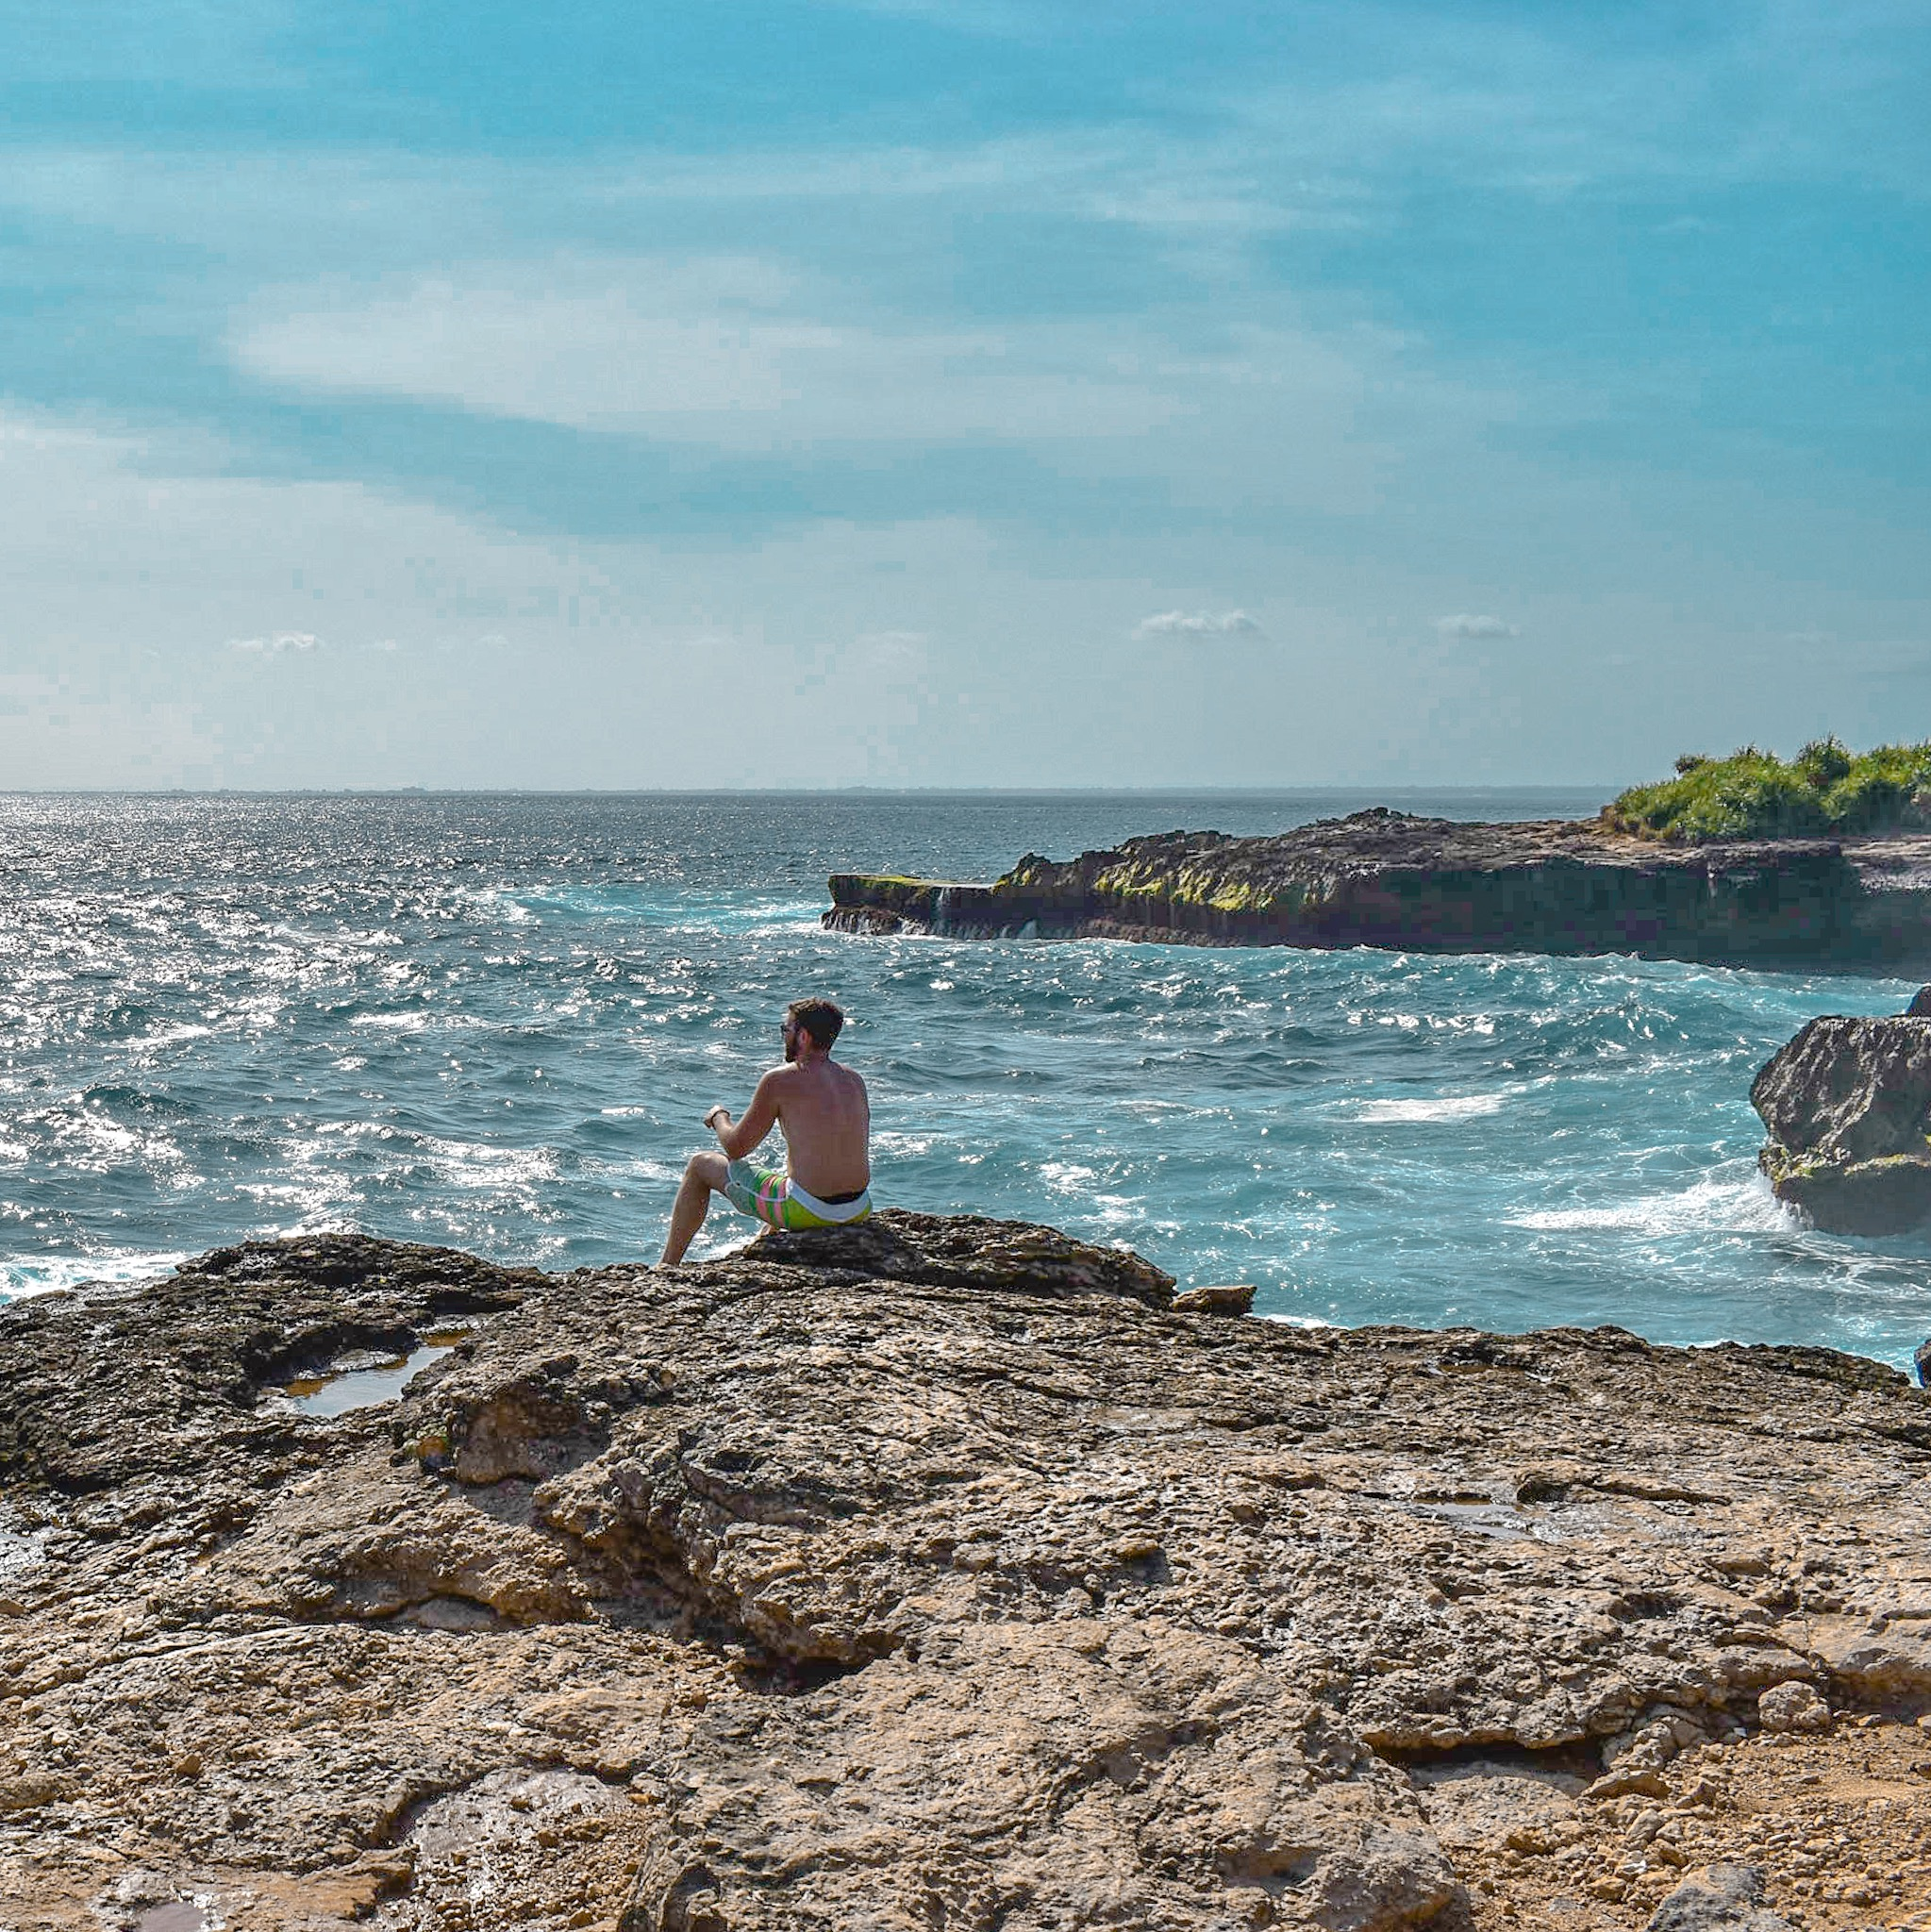 Man Views the Waves on Dream Beach on Lombok Island